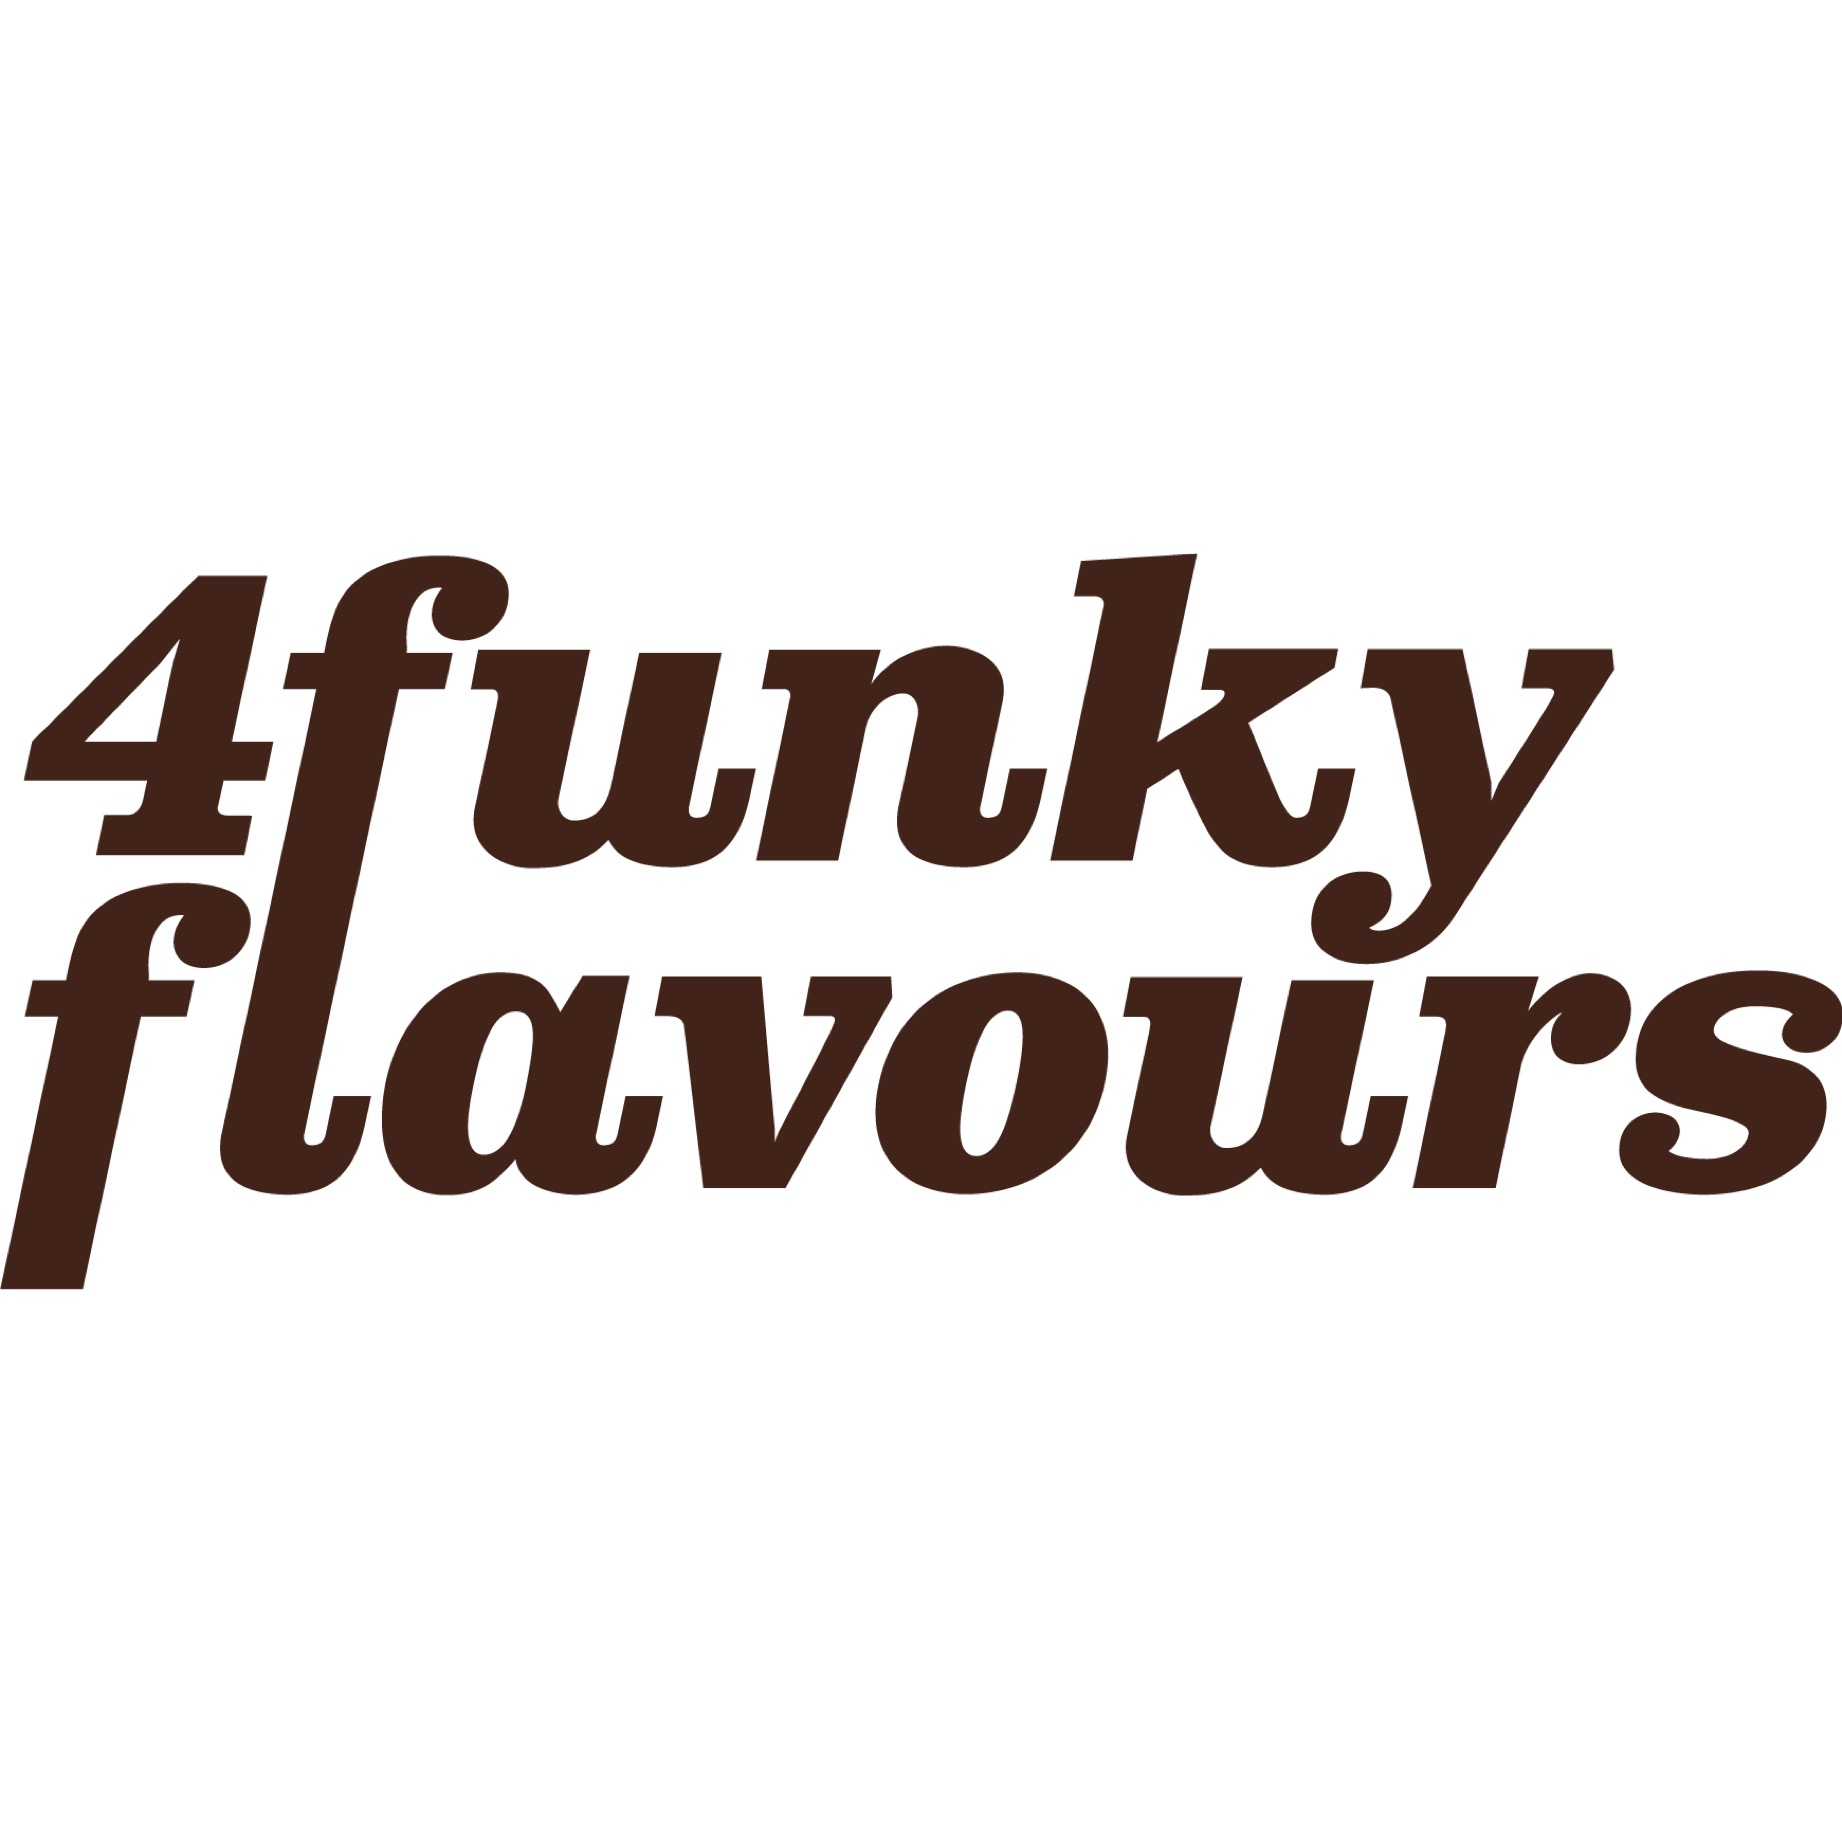 4funky flavours